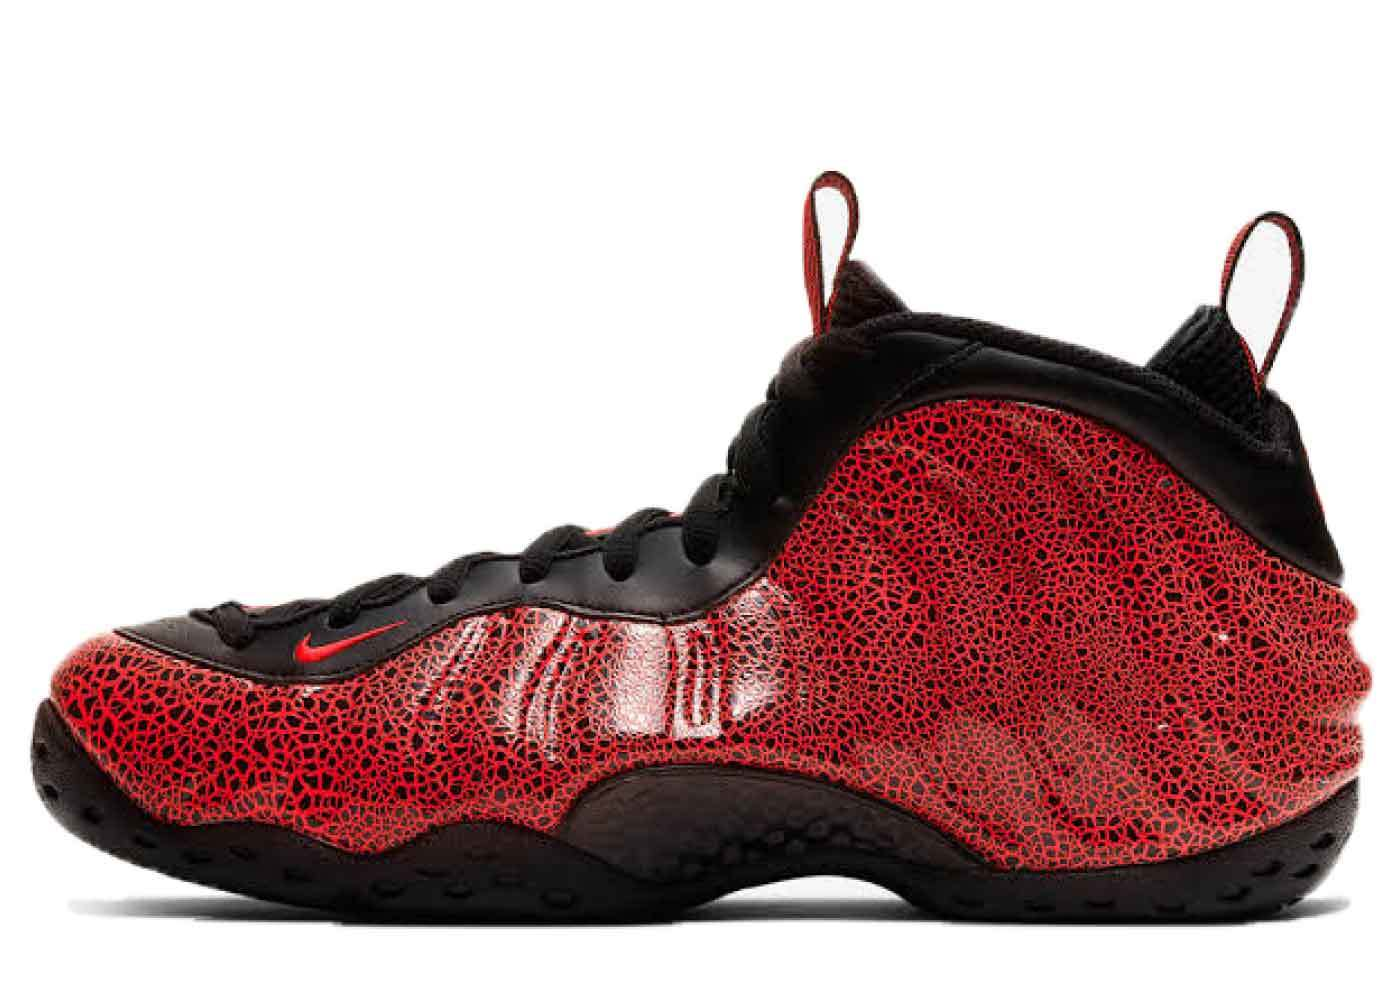 Nike Air Foamposite One Cracked Lavaの写真